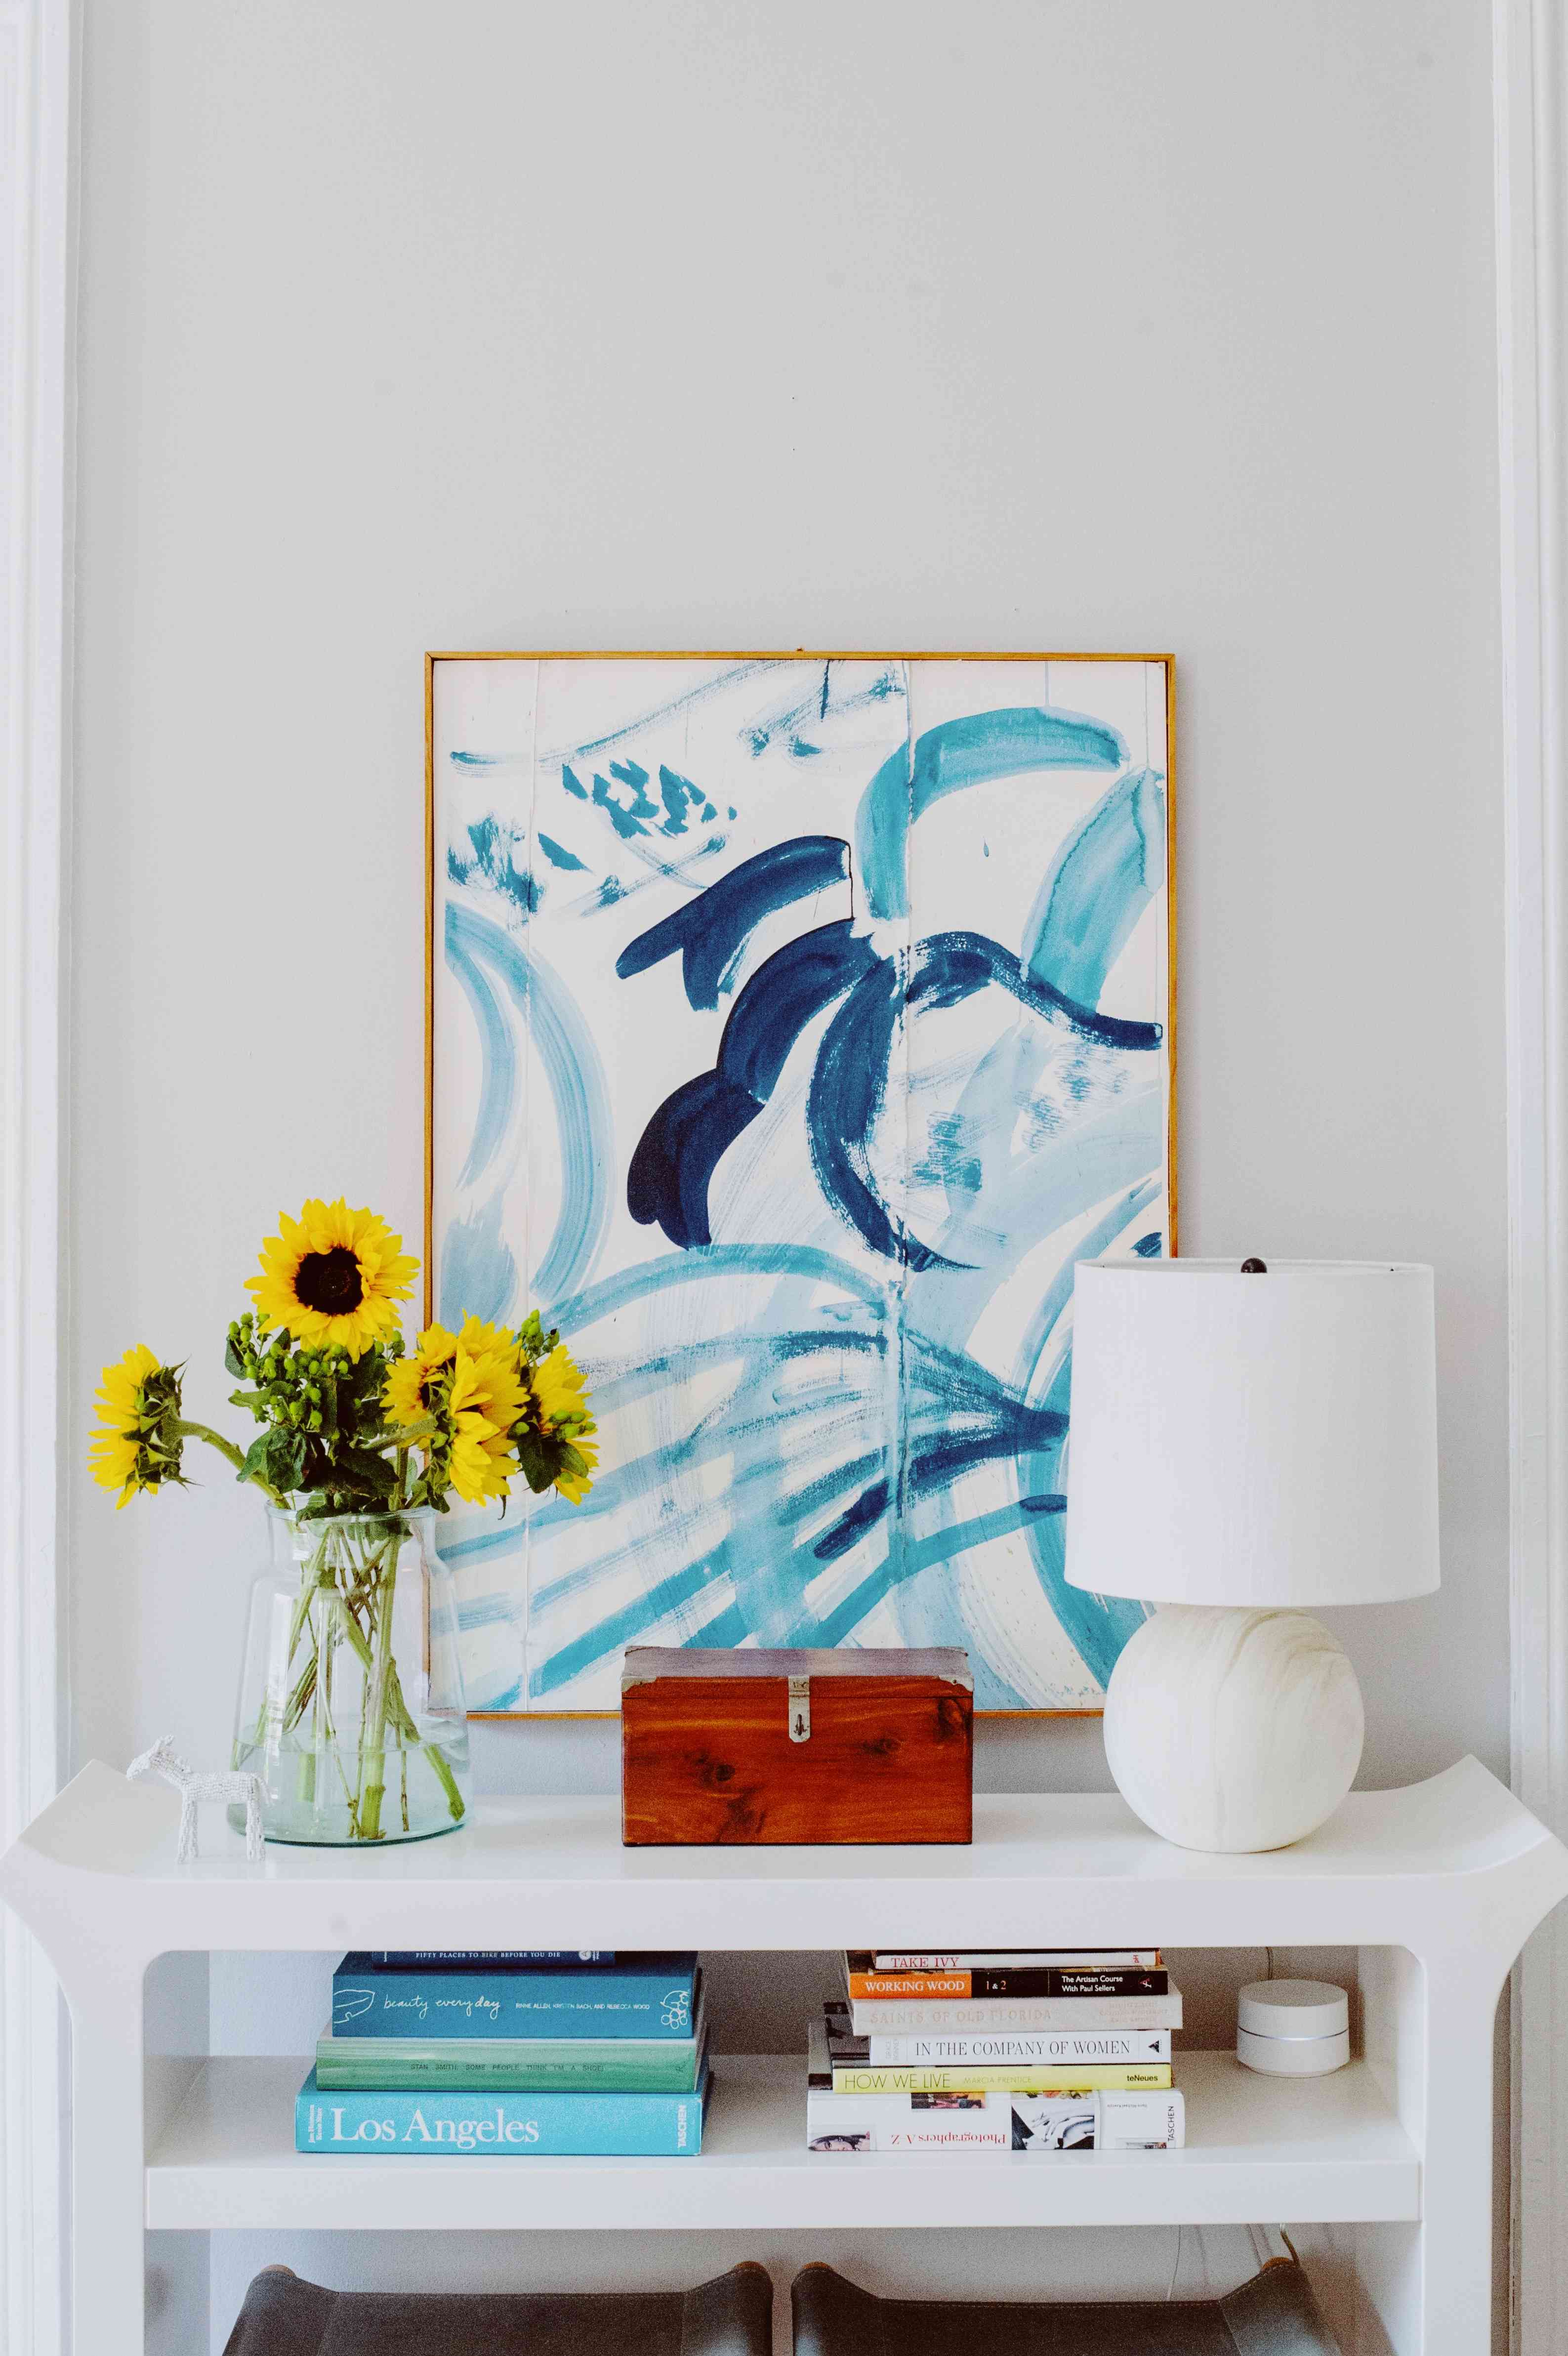 Amanda Greeley home tour - console with books and abstract artwork